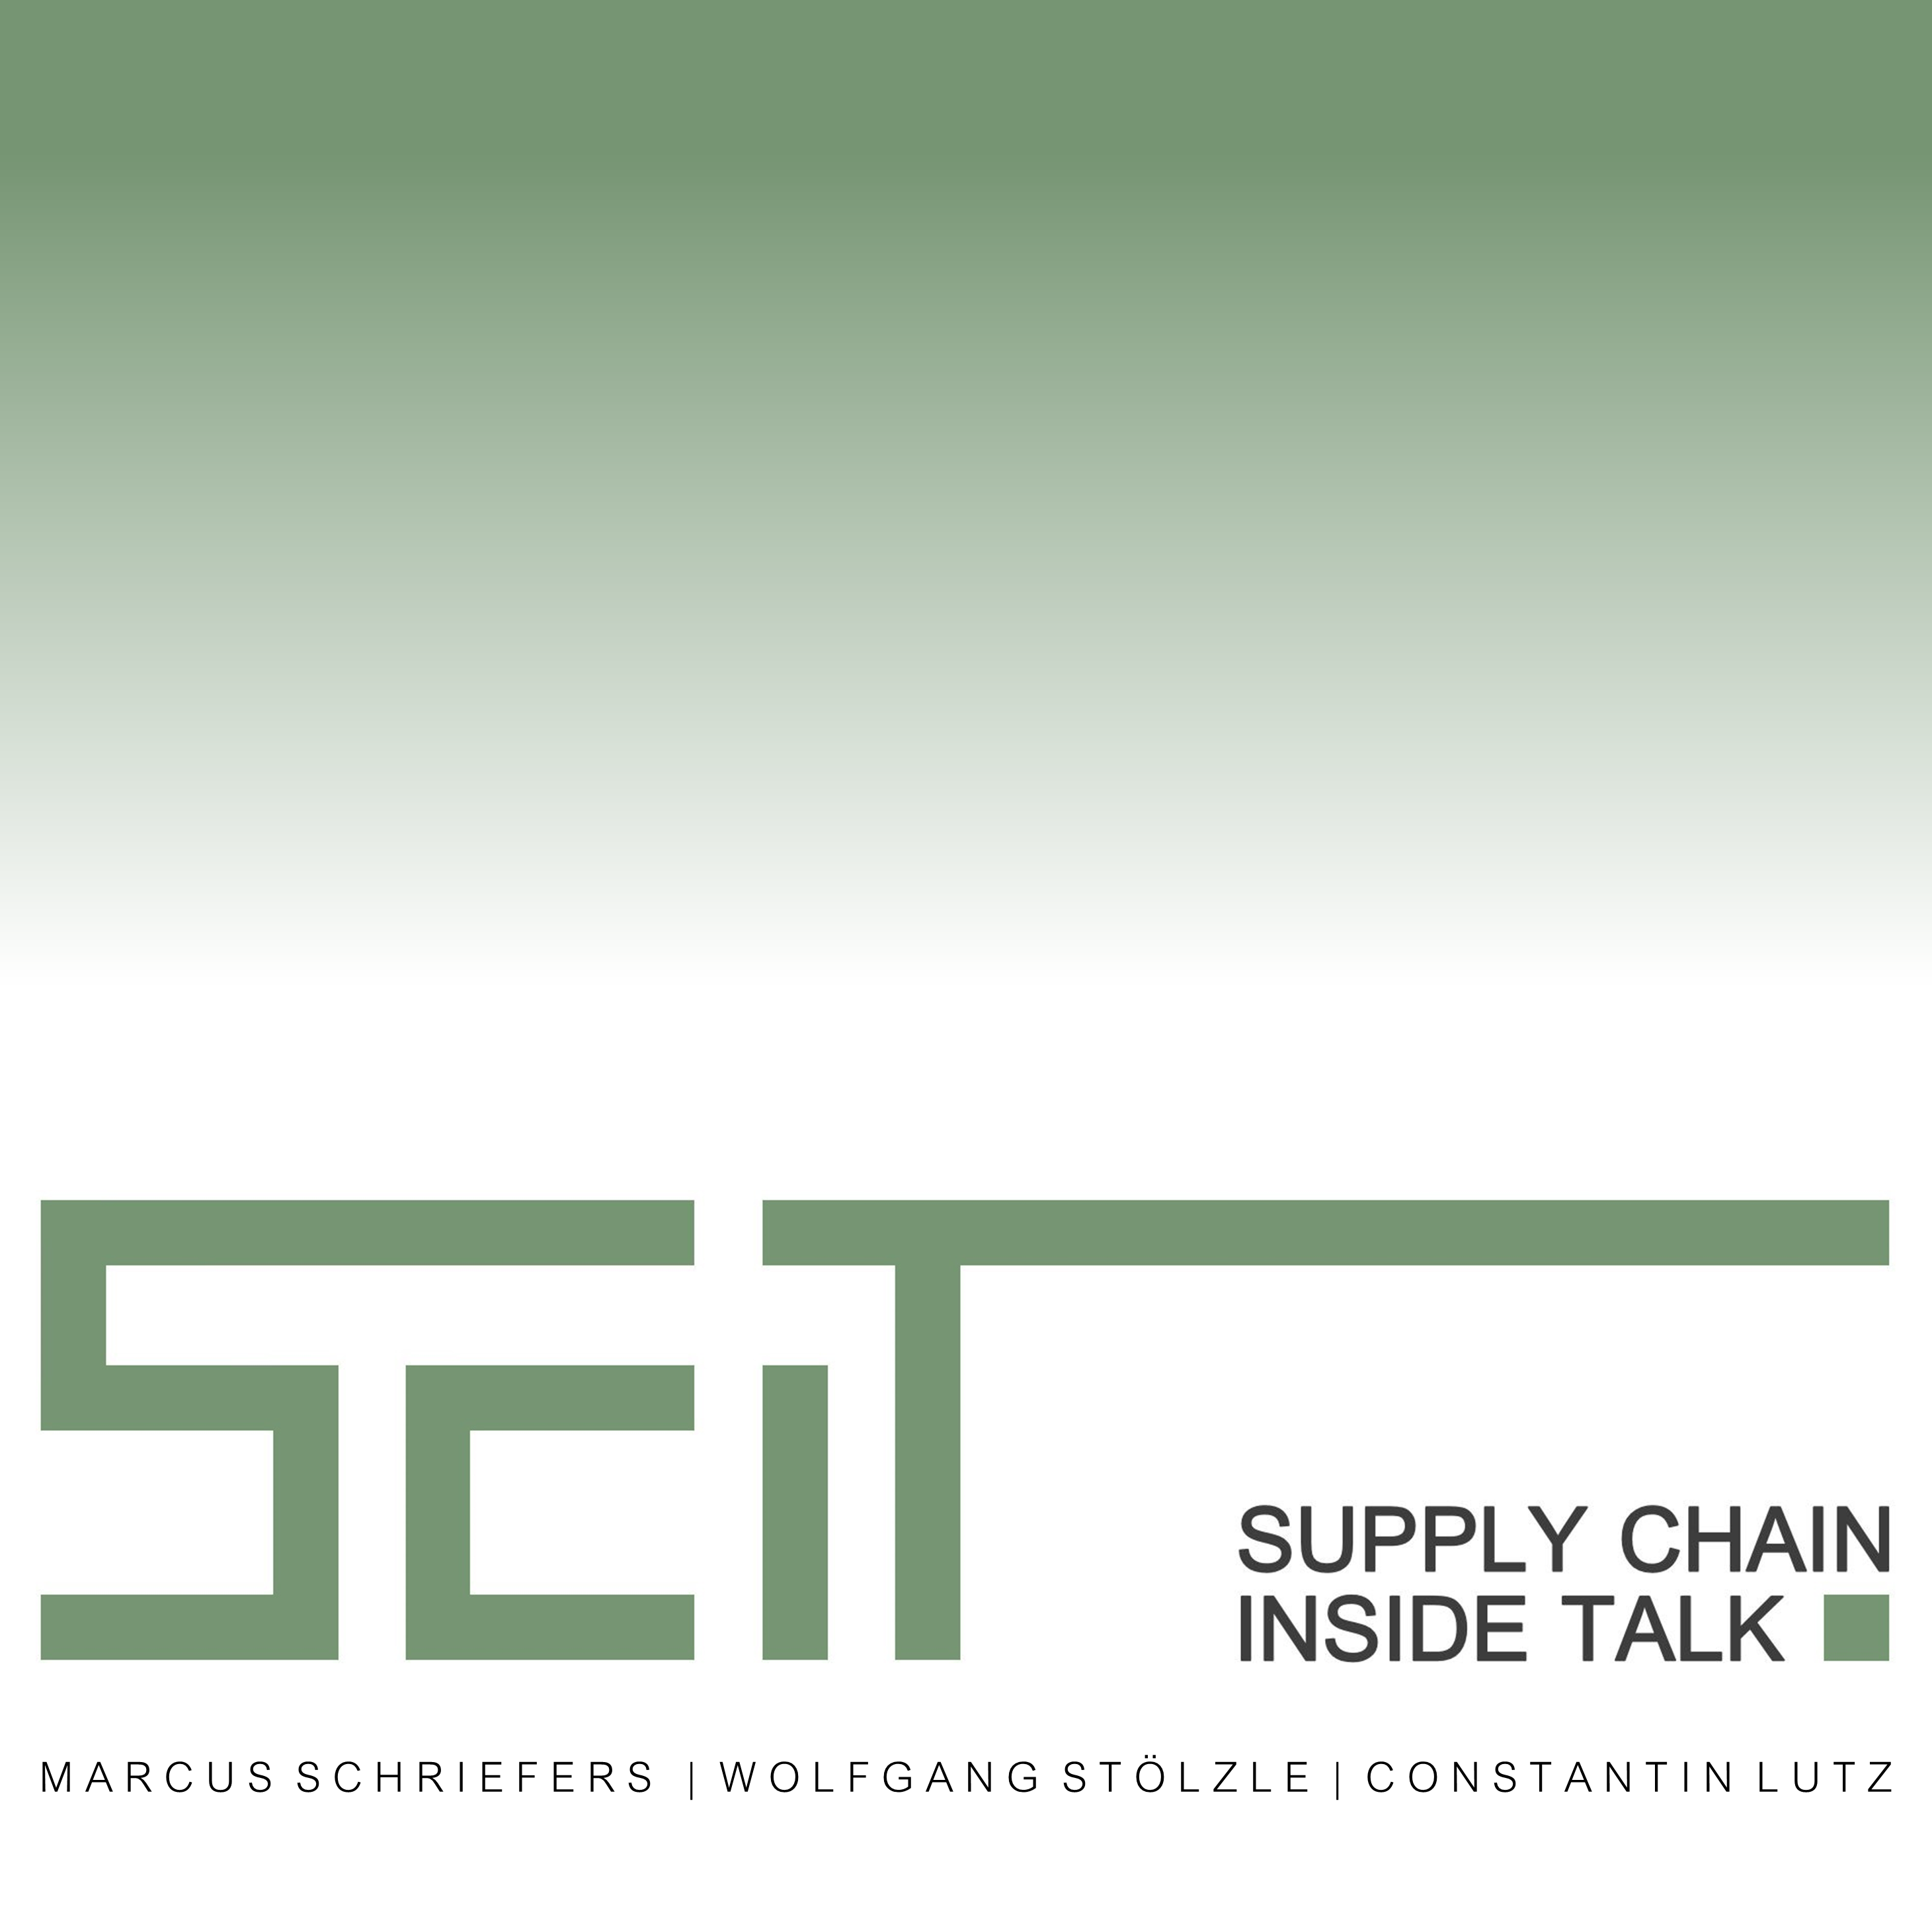 Show artwork for SCIT Supply Chain Inside Talk.